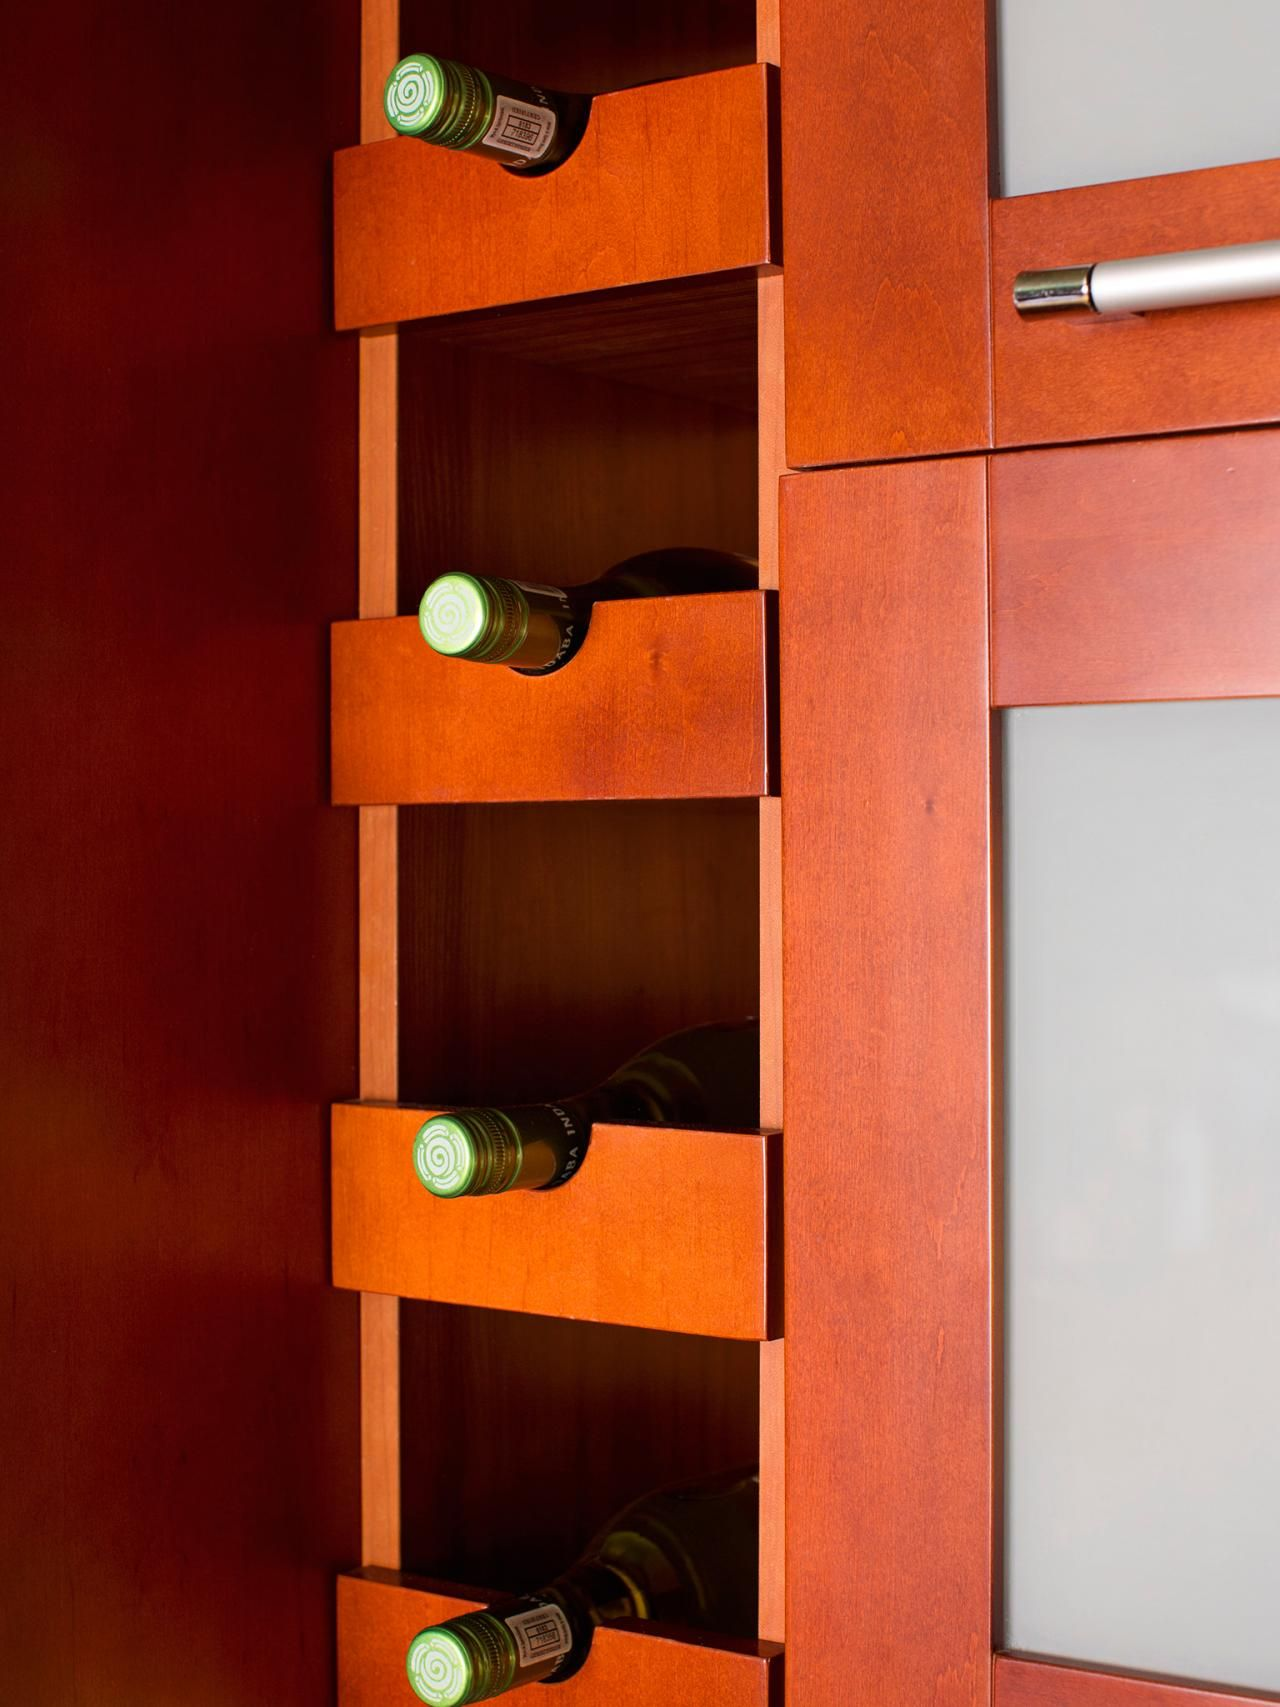 To Integrate Wine Storage Into The Kitchen Vertical Space Near The Refrigerator Was Out Kitchen Cabinet Storage Small Kitchen Pictures Kitchen Design Pictures